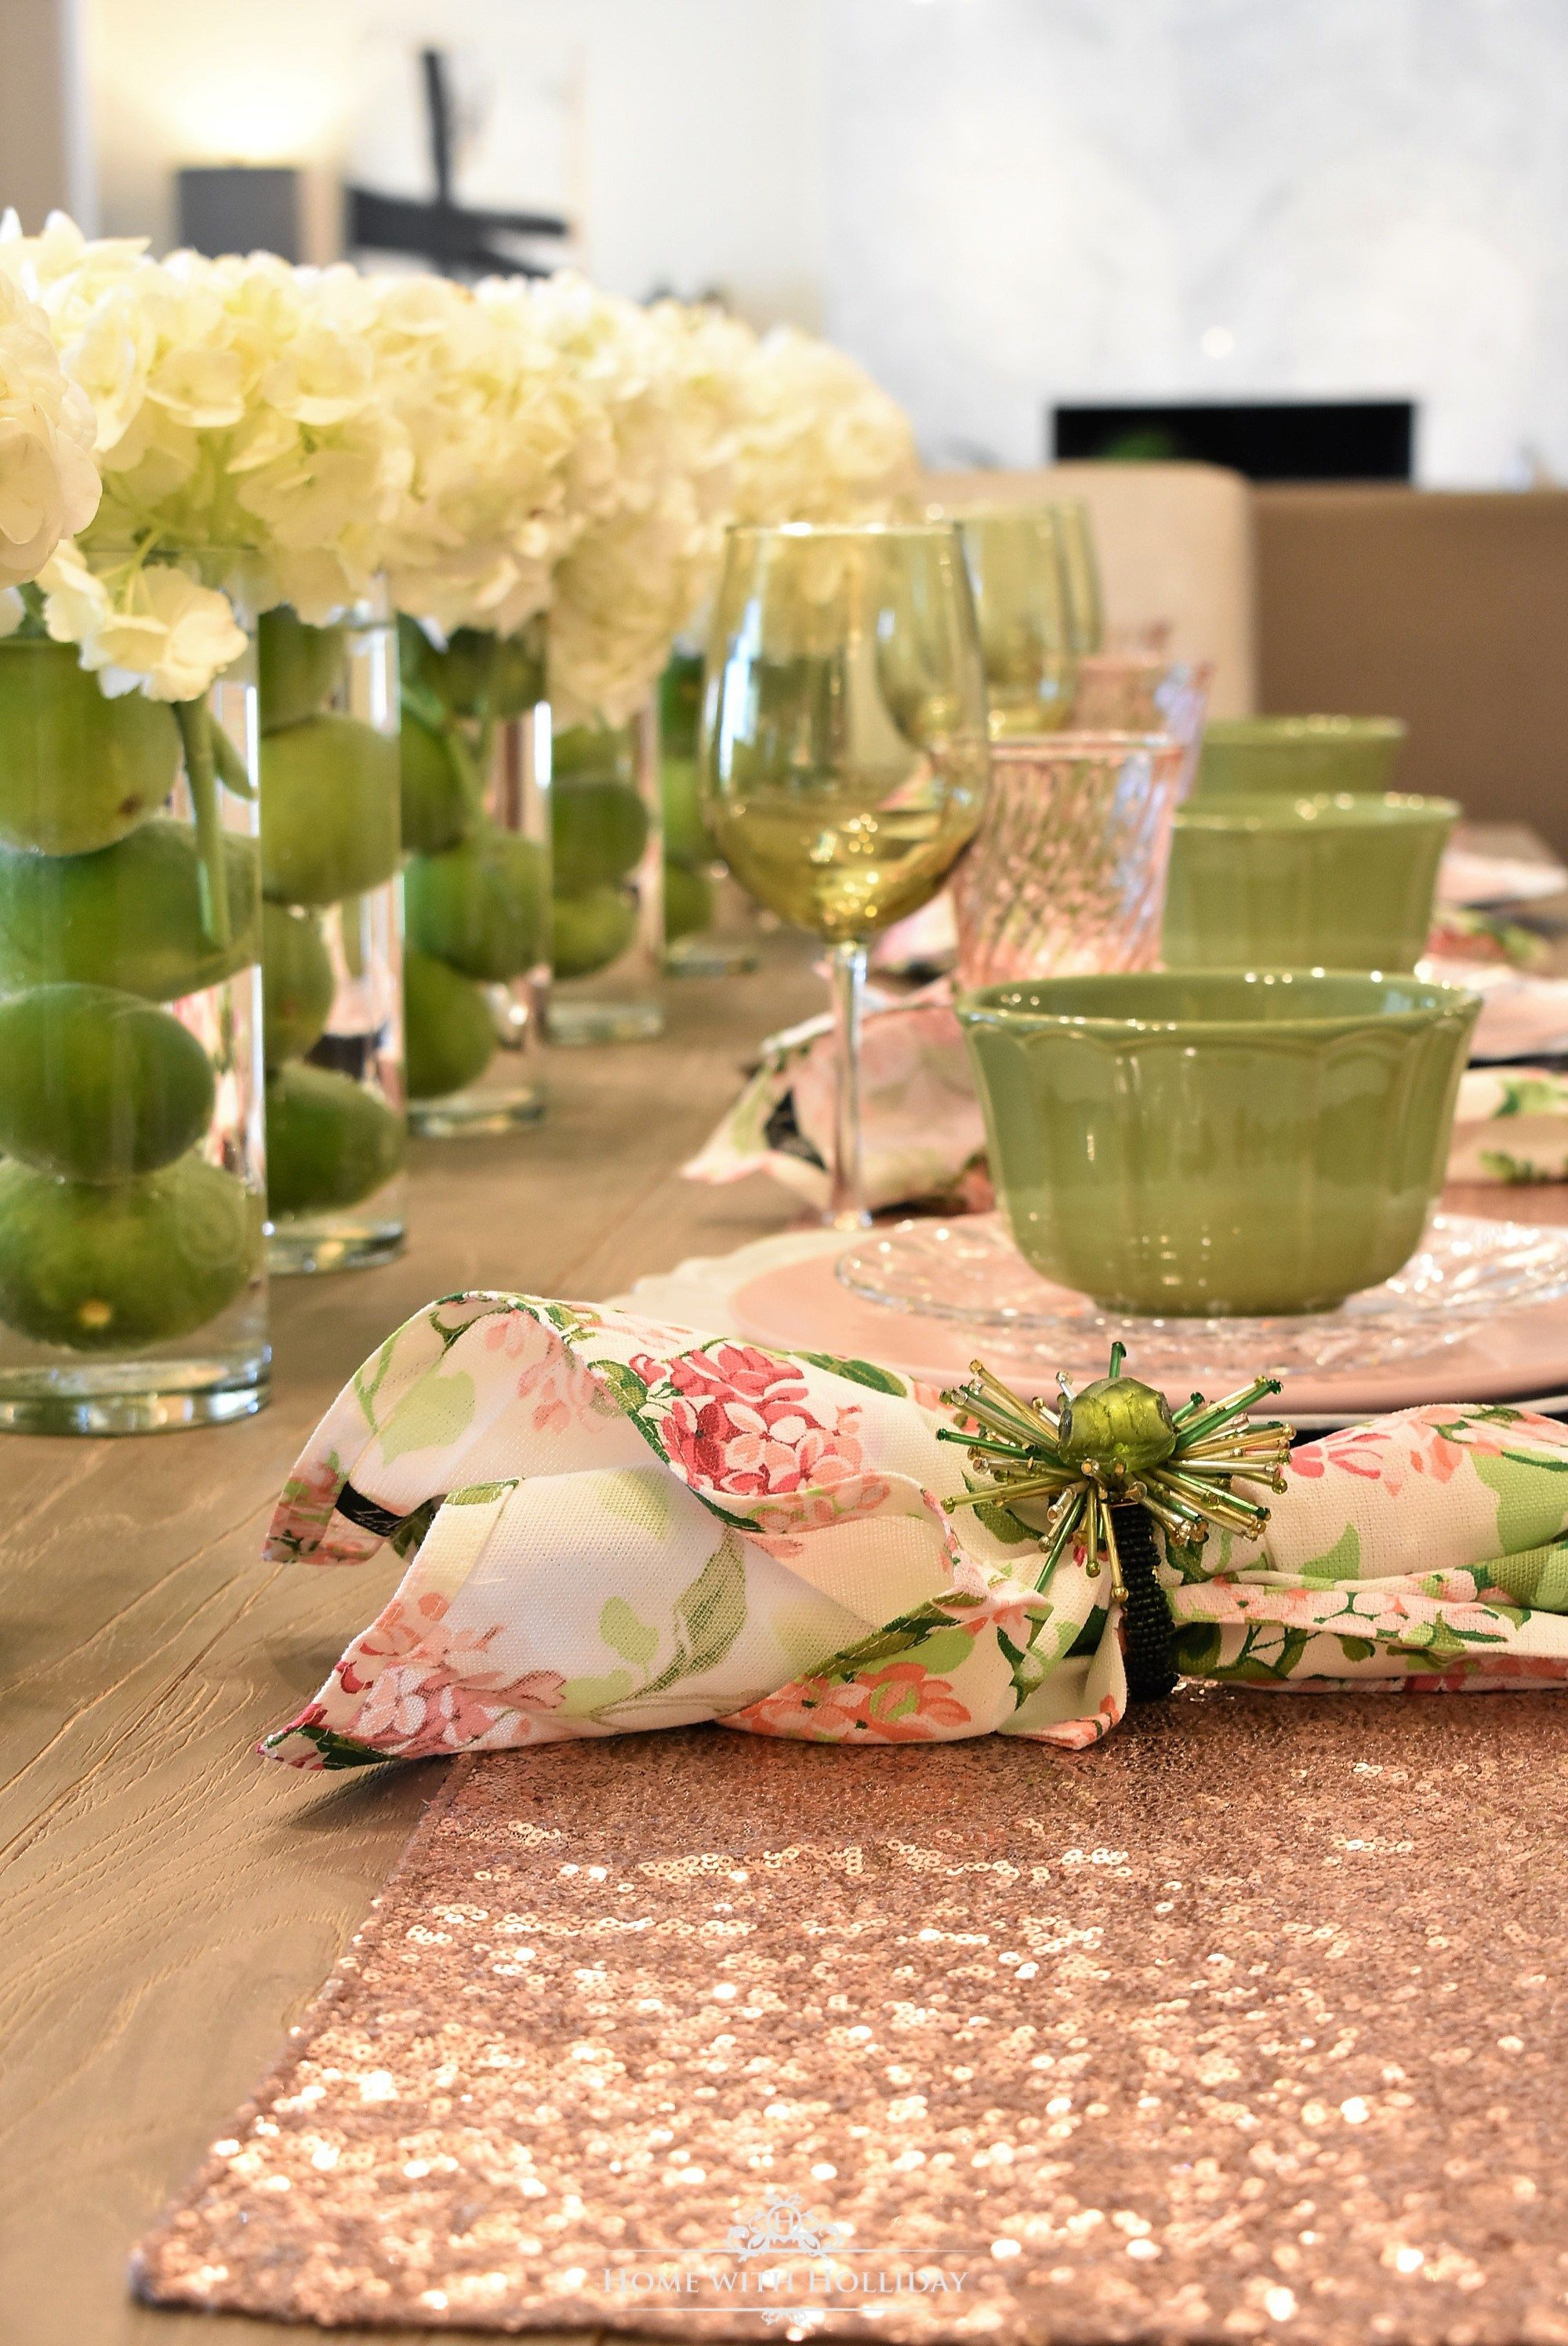 Spring Table Setting For Mother S Day Luncheon Home With Holliday Spring Table Settings Inexpensive Centerpieces Spring Table